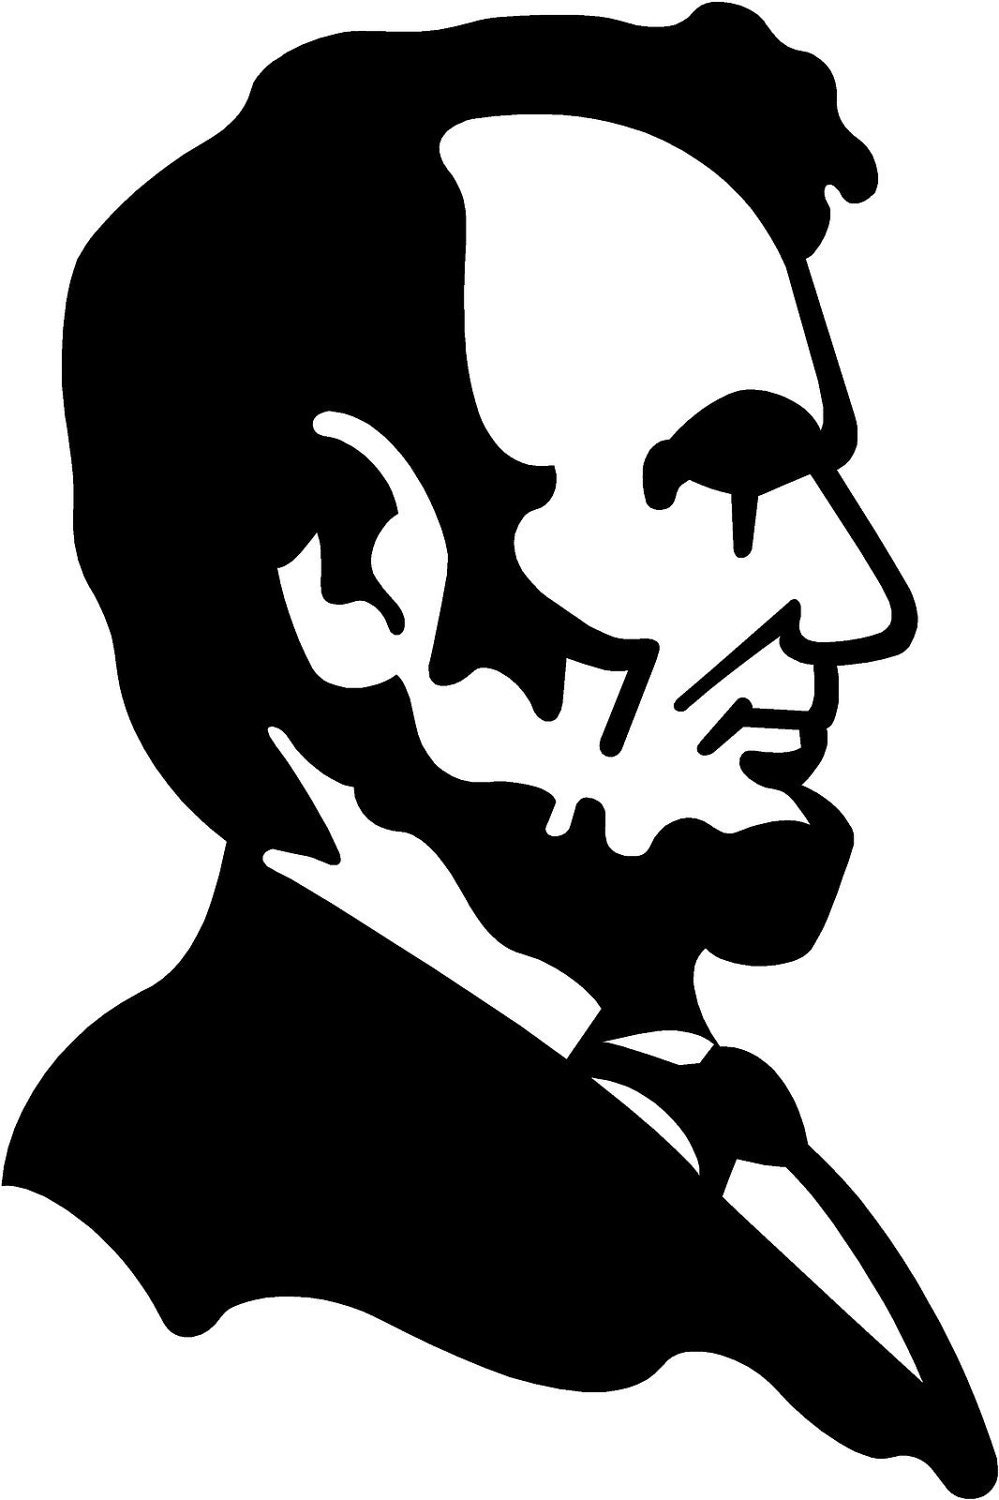 abraham lincoln presidential outline Presidential outline assignment #3 ee i abraham lincoln, #16, ii born on february 12, 1809, in hardin county, kentucky iii.